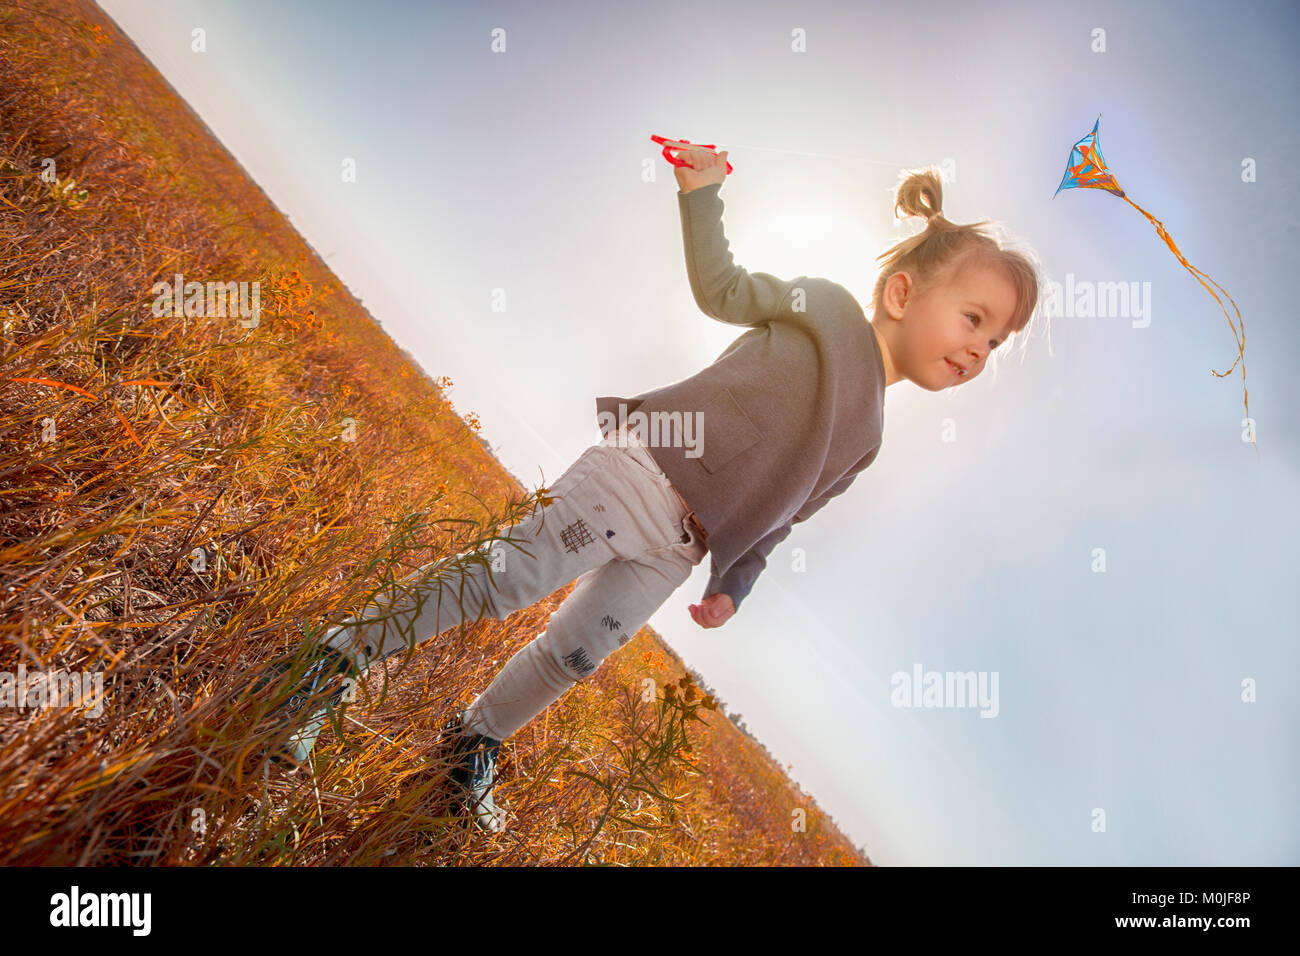 Little girl flying a kite in the field Intentional slope of the horizon to give the dynamics of the photo - Stock Image